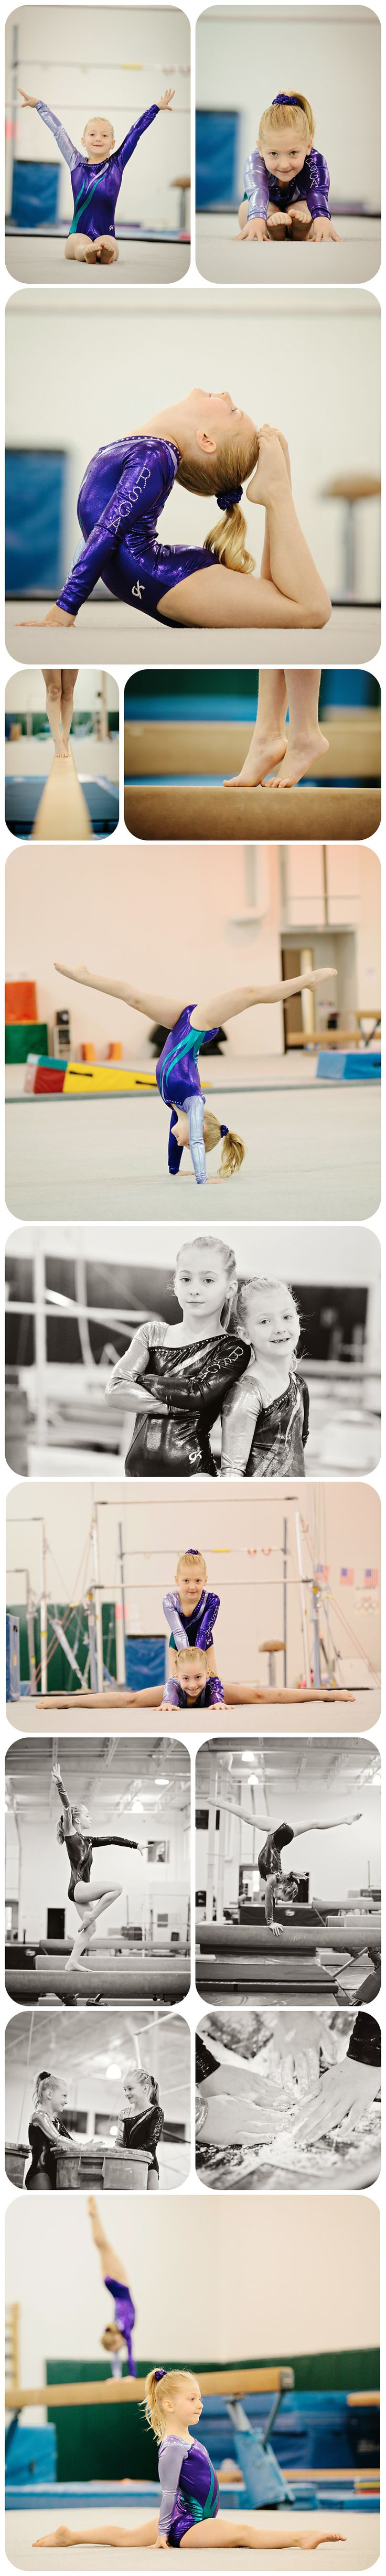 Oakdale MN Gymnastics Photography – Rising Stars Mini Sessions » Journey Photography